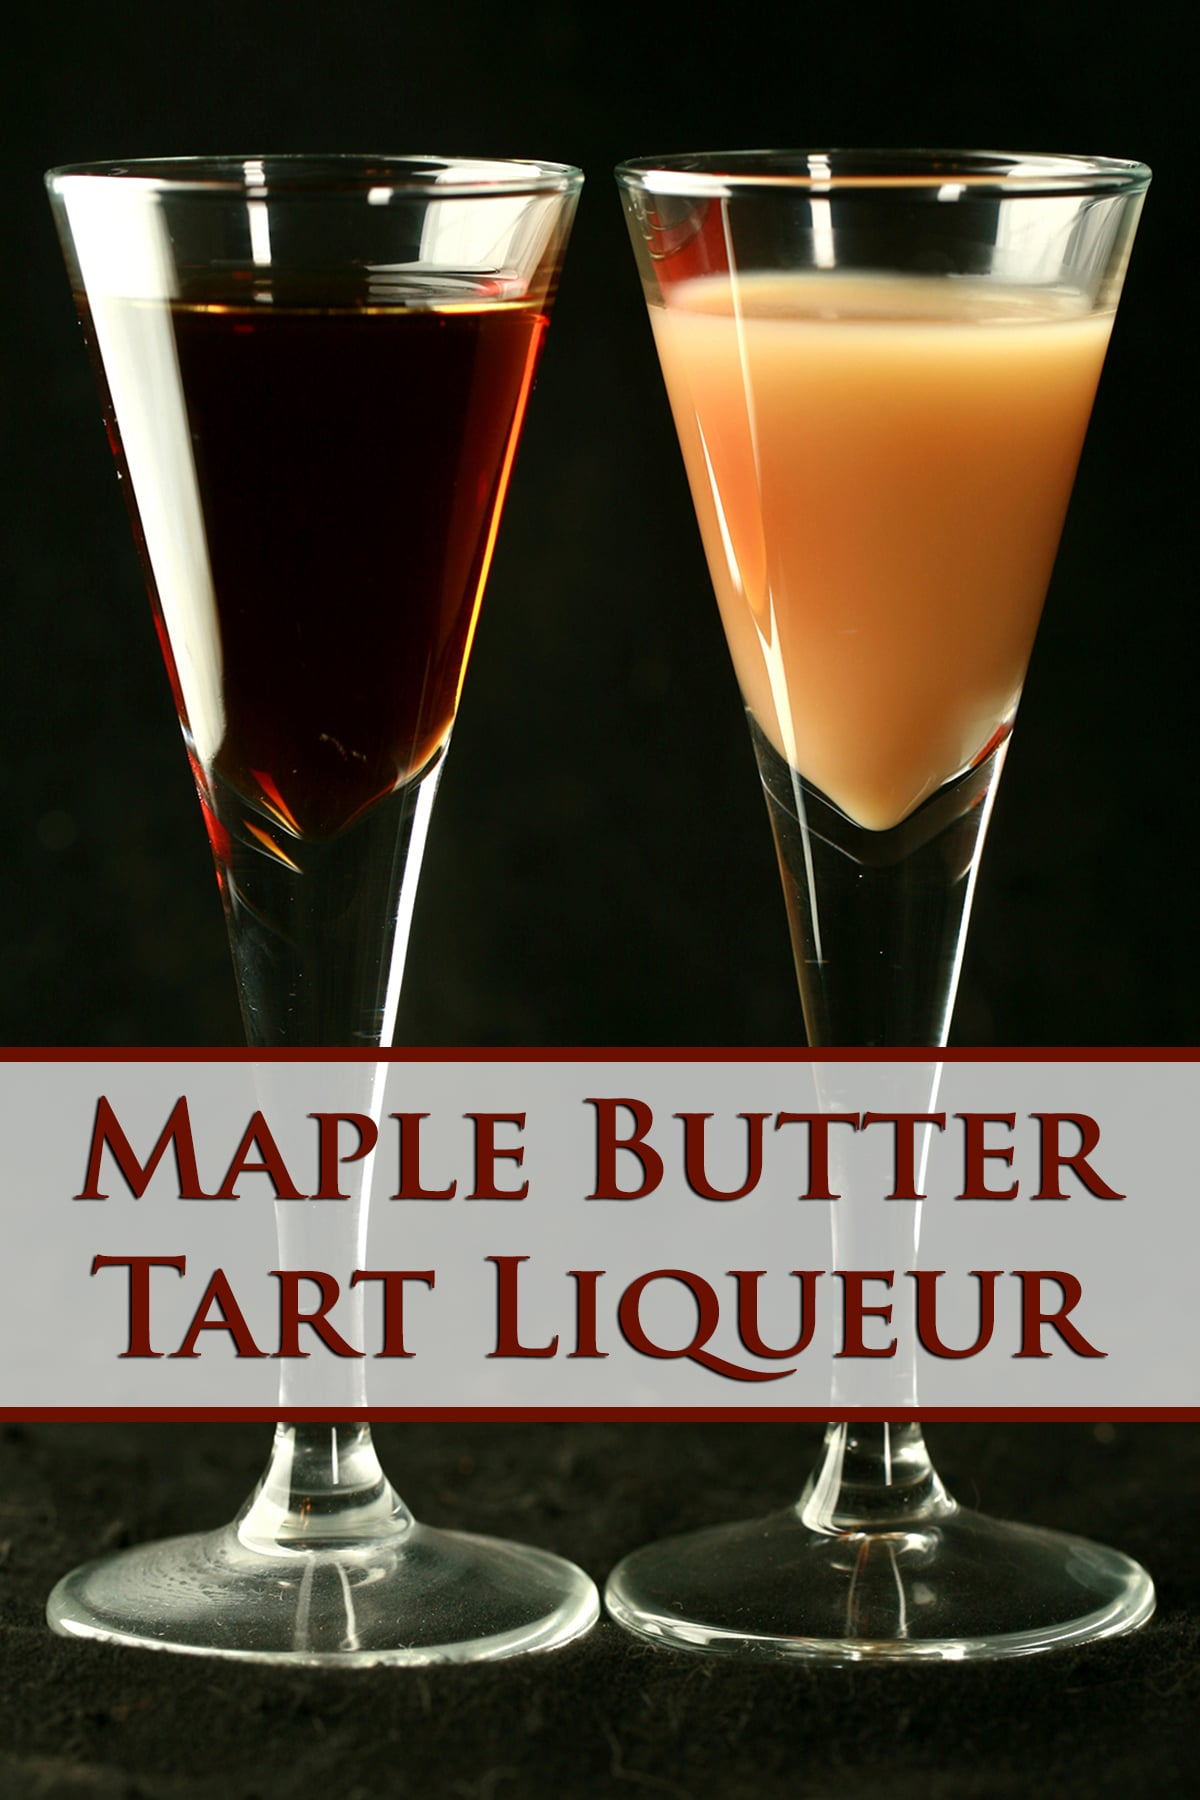 Two tall, fluted shot glasses. One has maple butter tart liqueur in it, the other has maple butter tart creme liqueur in it.